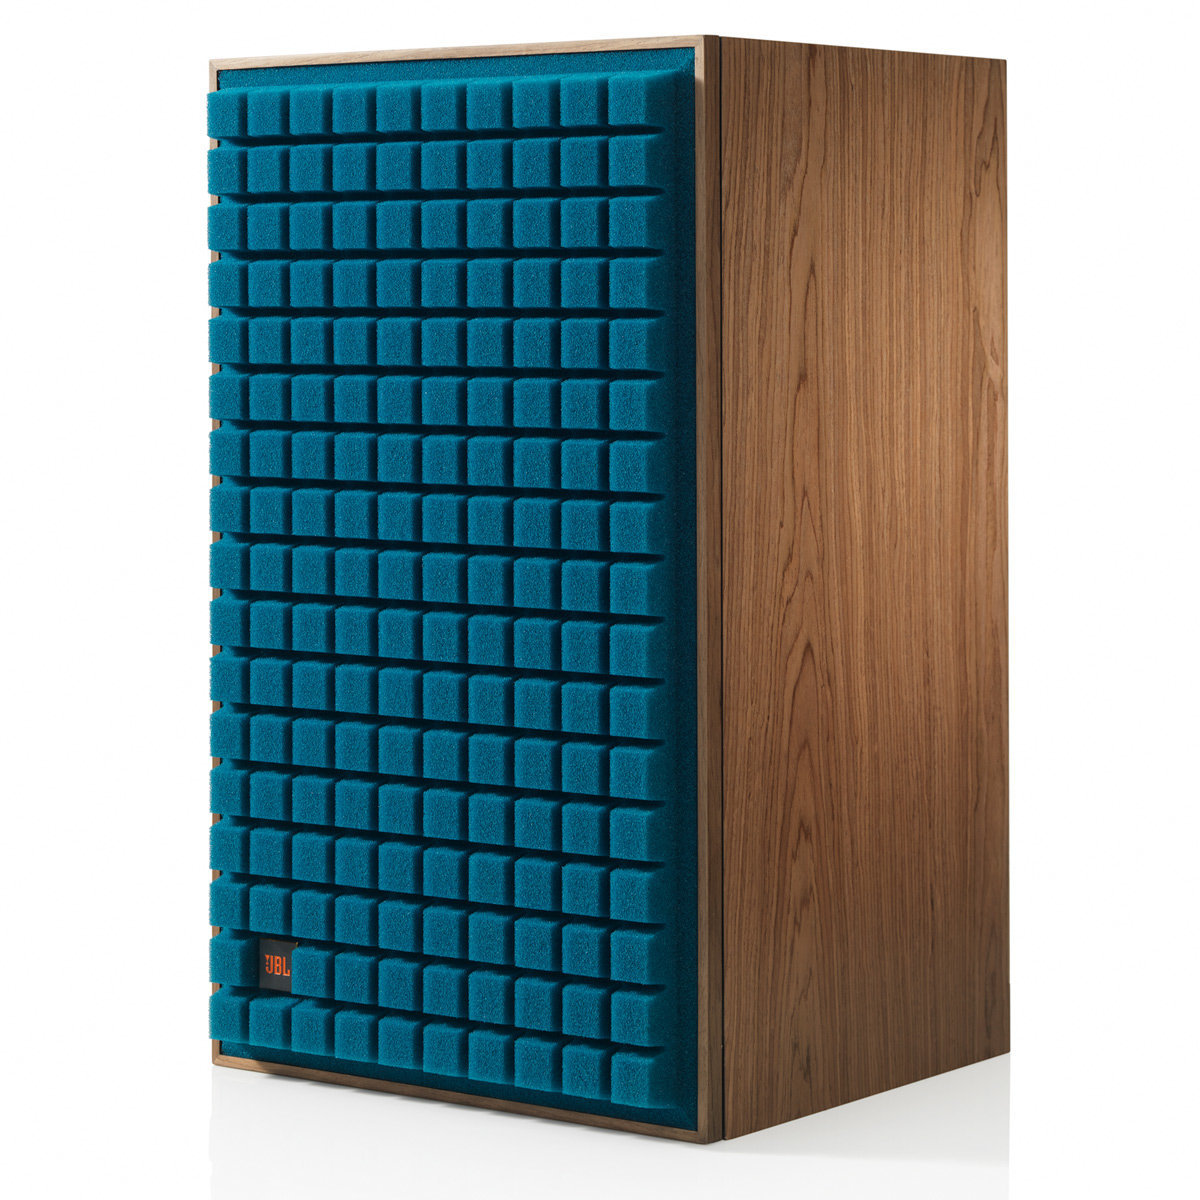 JBL Synthesis L100 Classic Bookshelf Loudspeaker | World